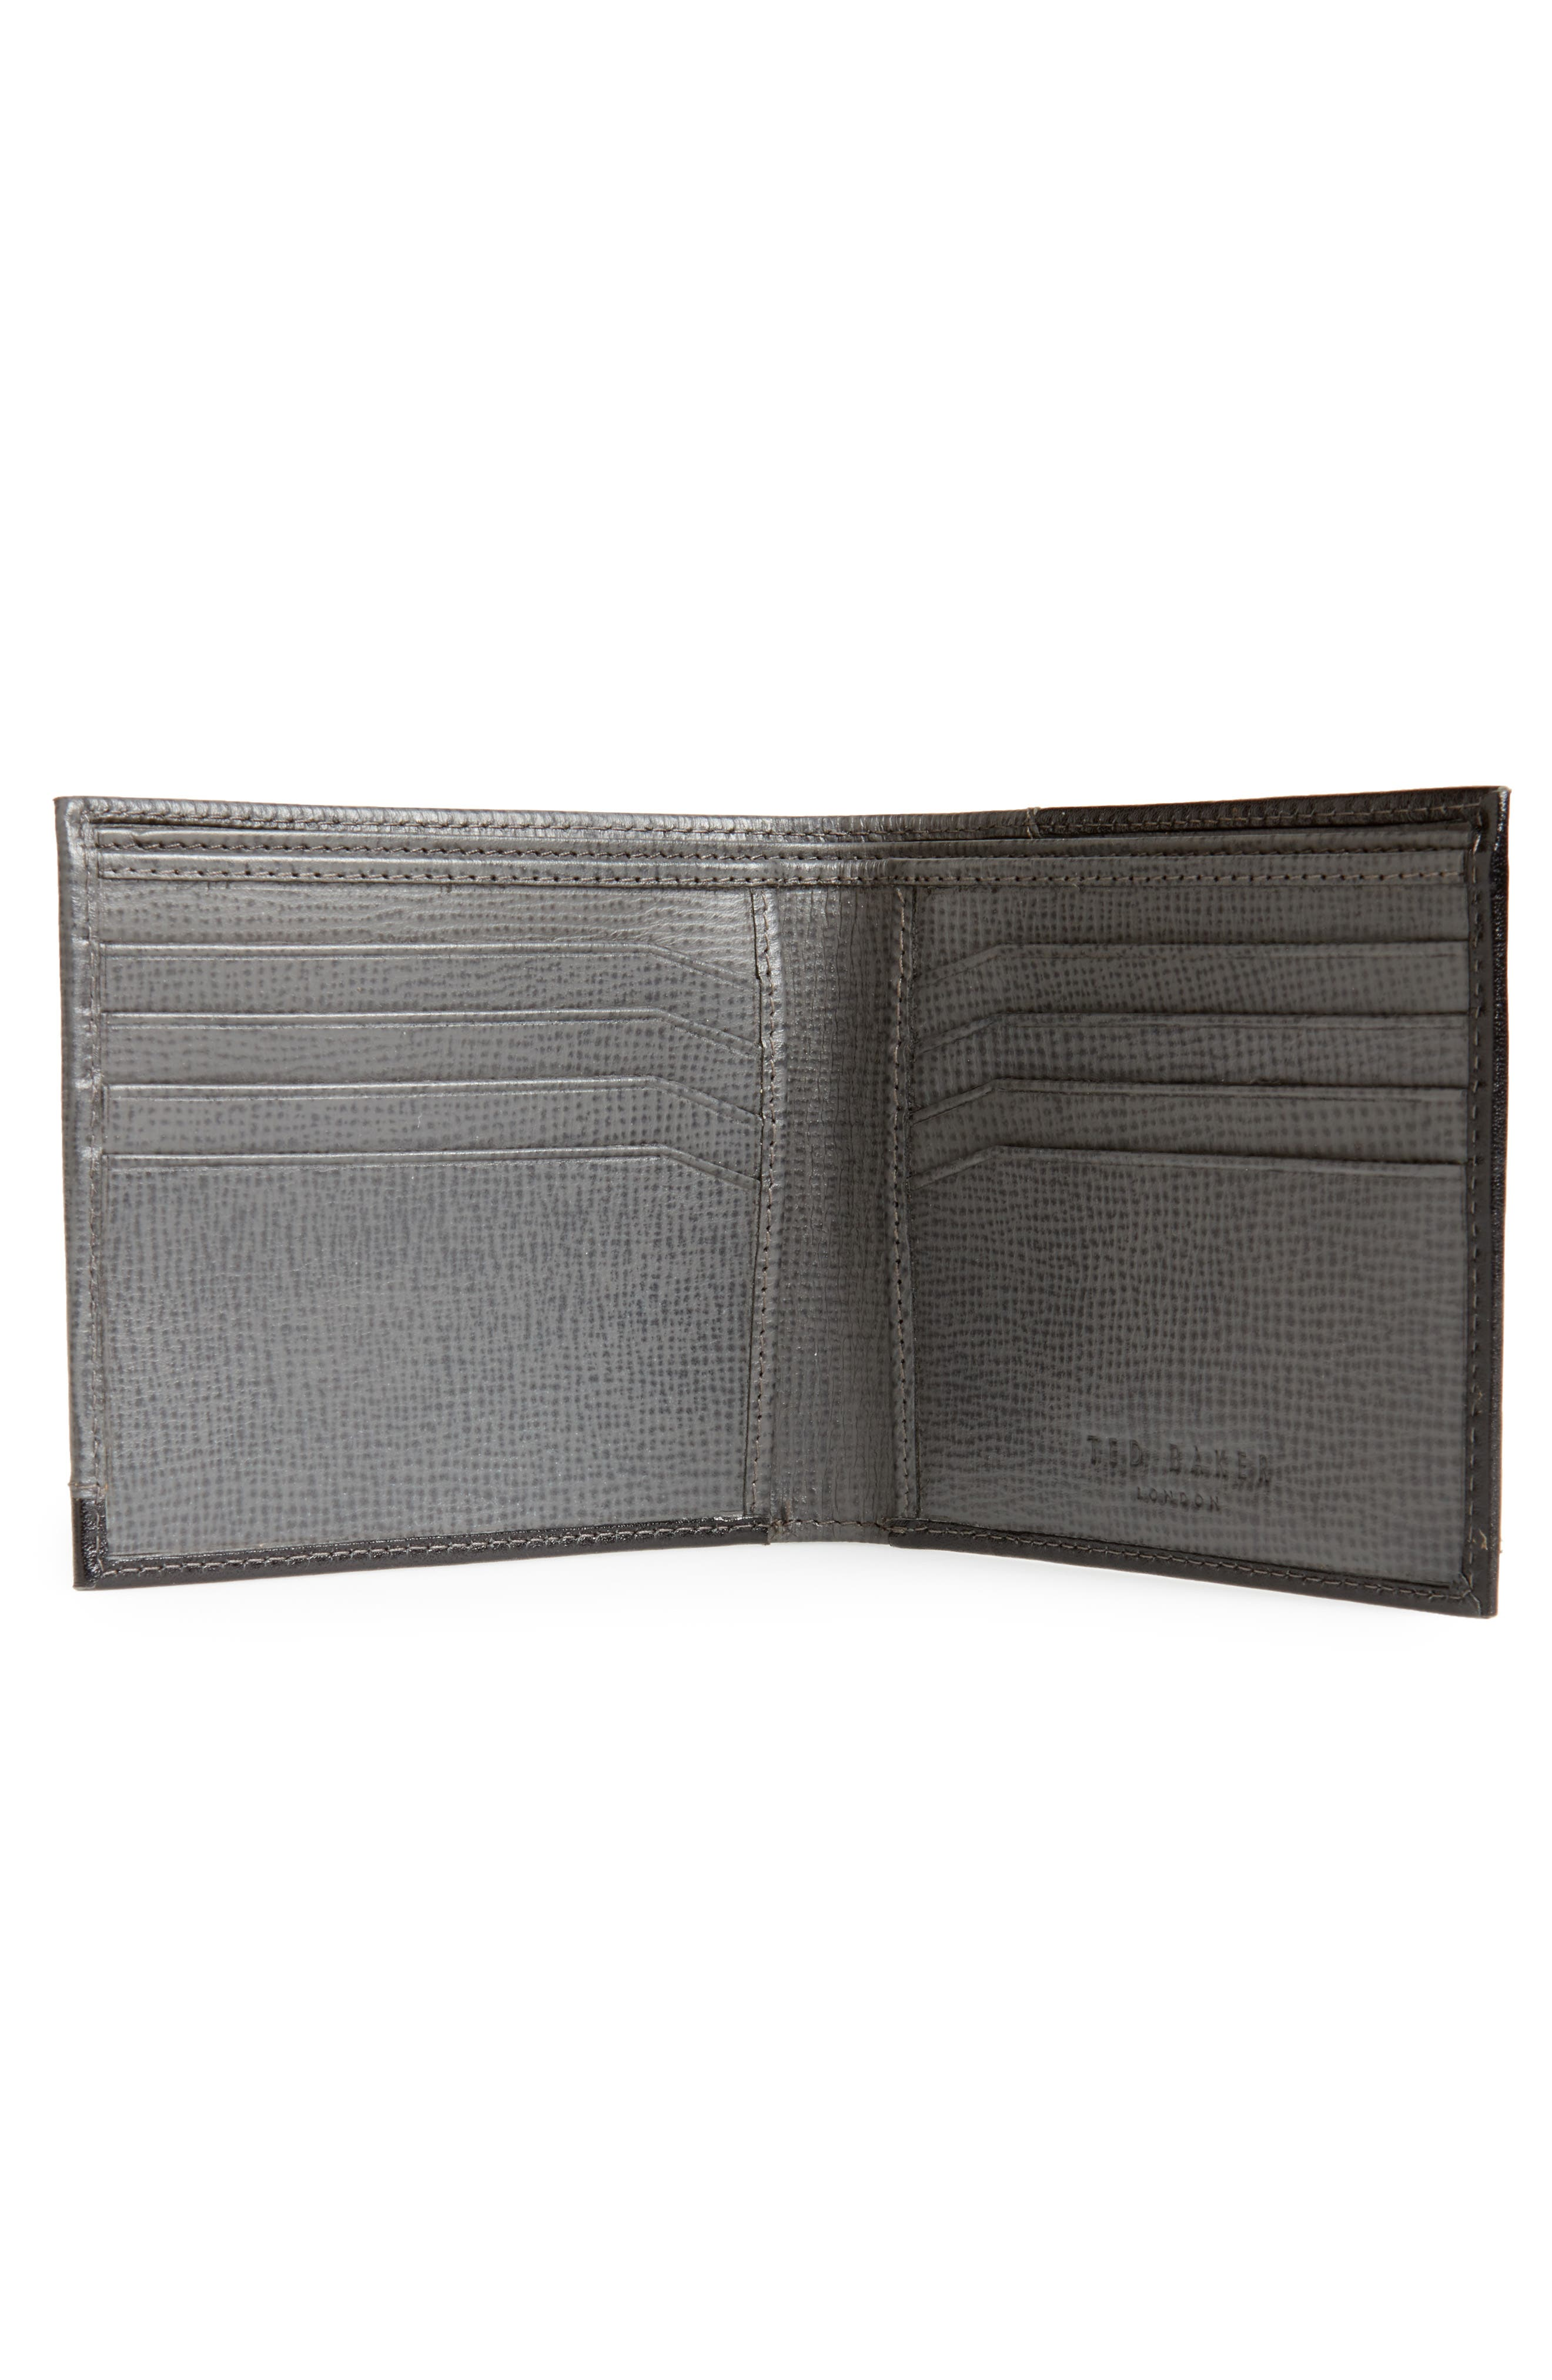 TED BAKER LONDON,                             Roller Textured Leather Wallet,                             Alternate thumbnail 2, color,                             020